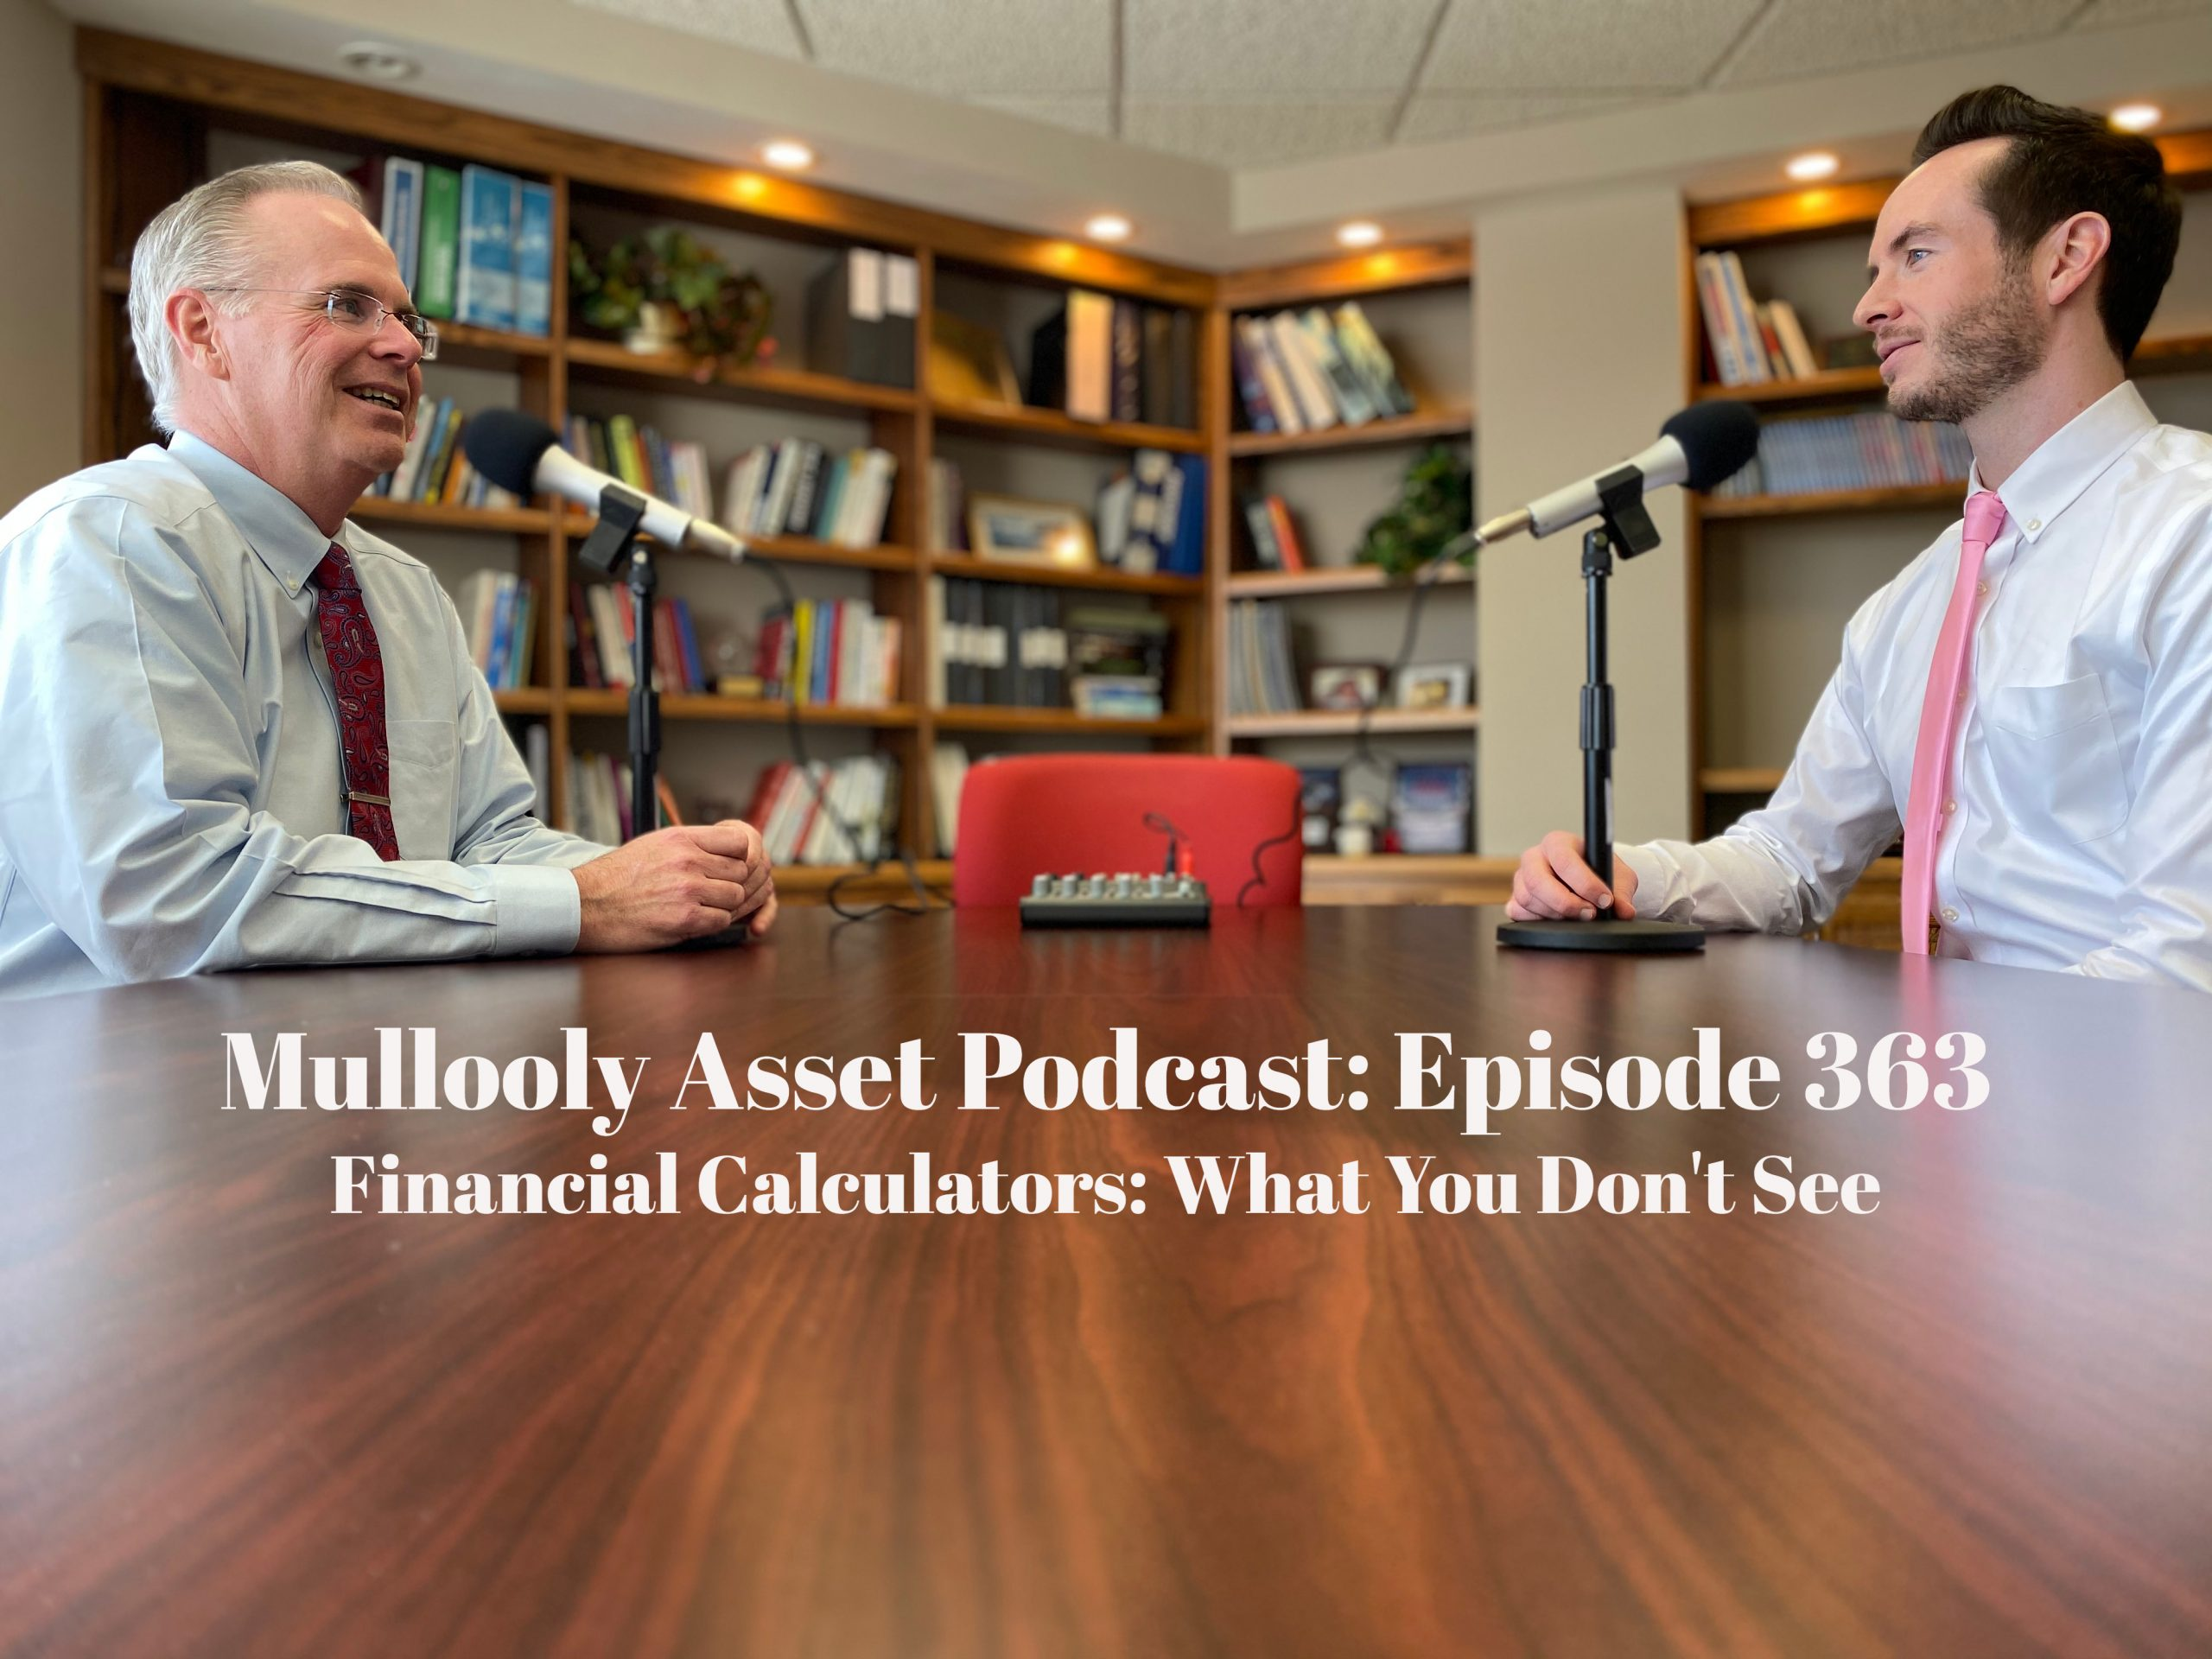 Financial Calculators: What You Don't See